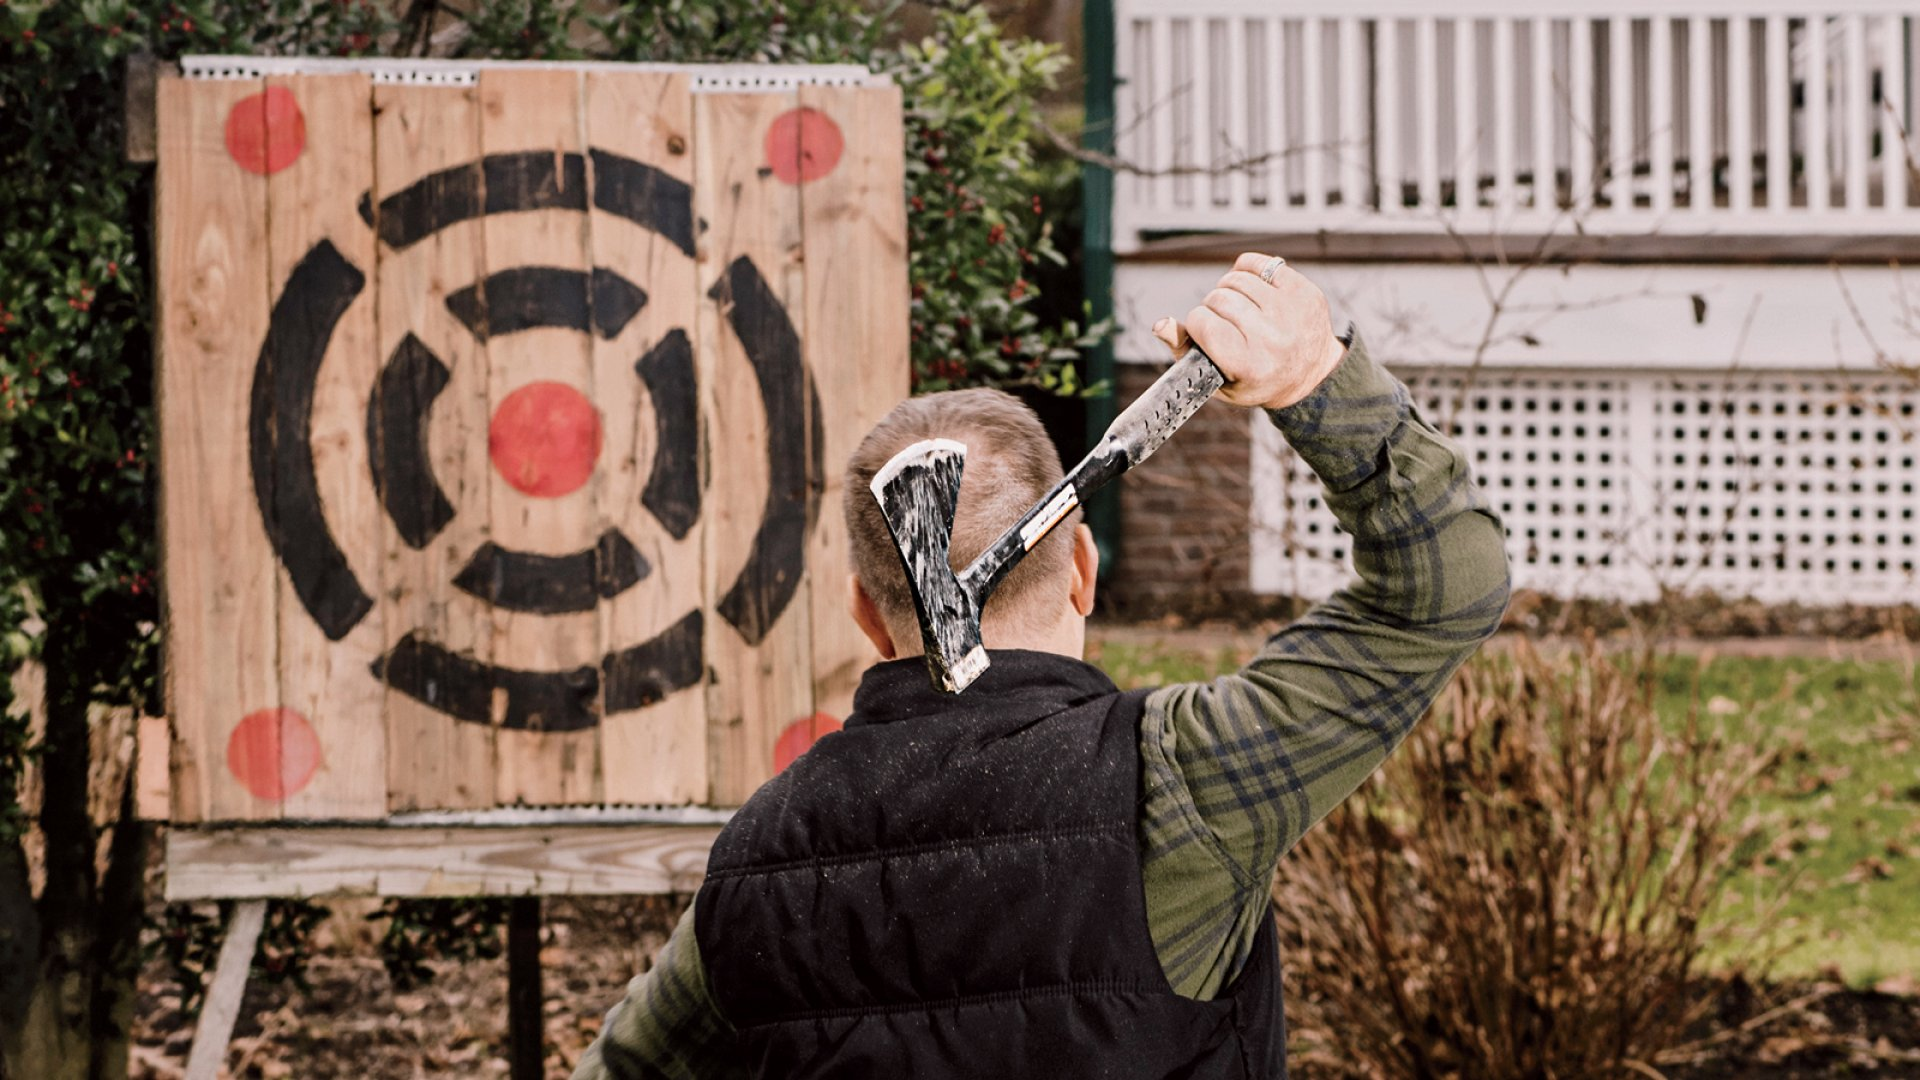 How These Founders Turned Axe-Throwing Into a Lucrative Business